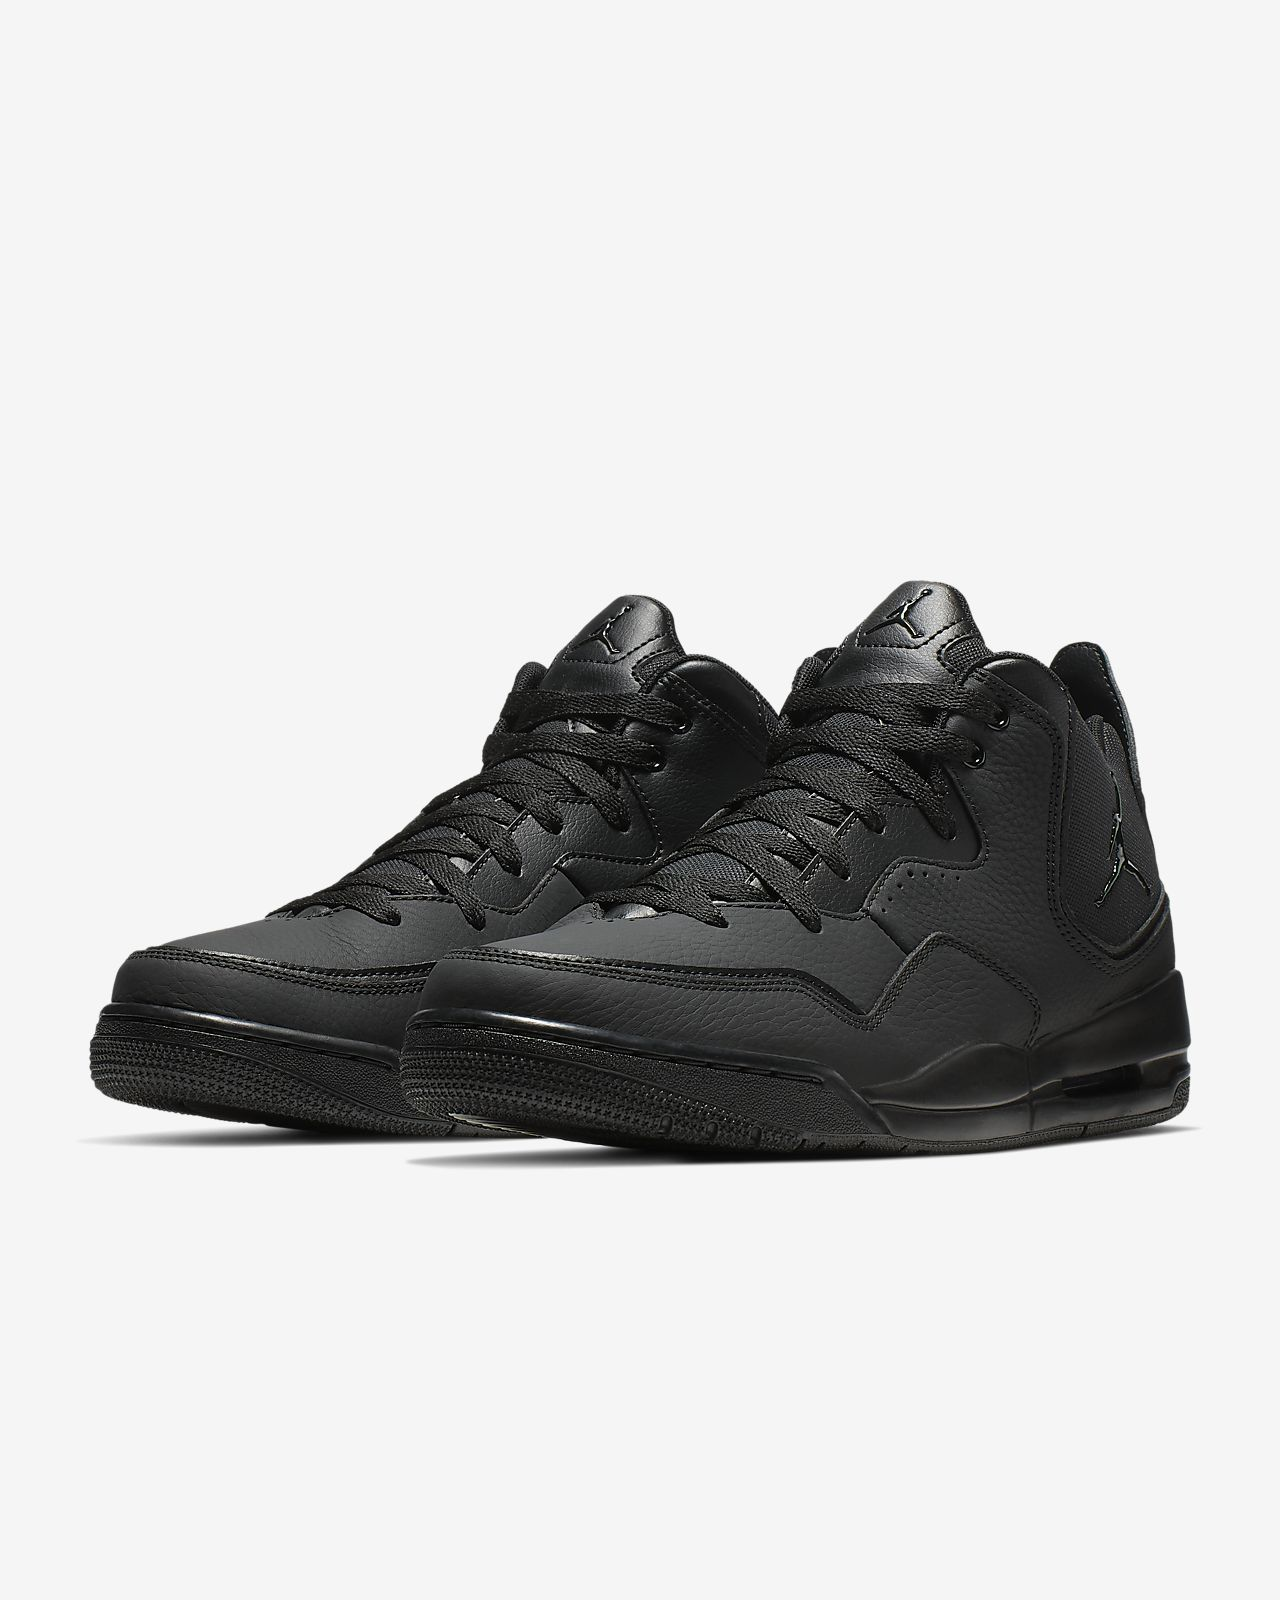 12821360afc2 Jordan Courtside 23 Men s Shoe. Nike.com MA